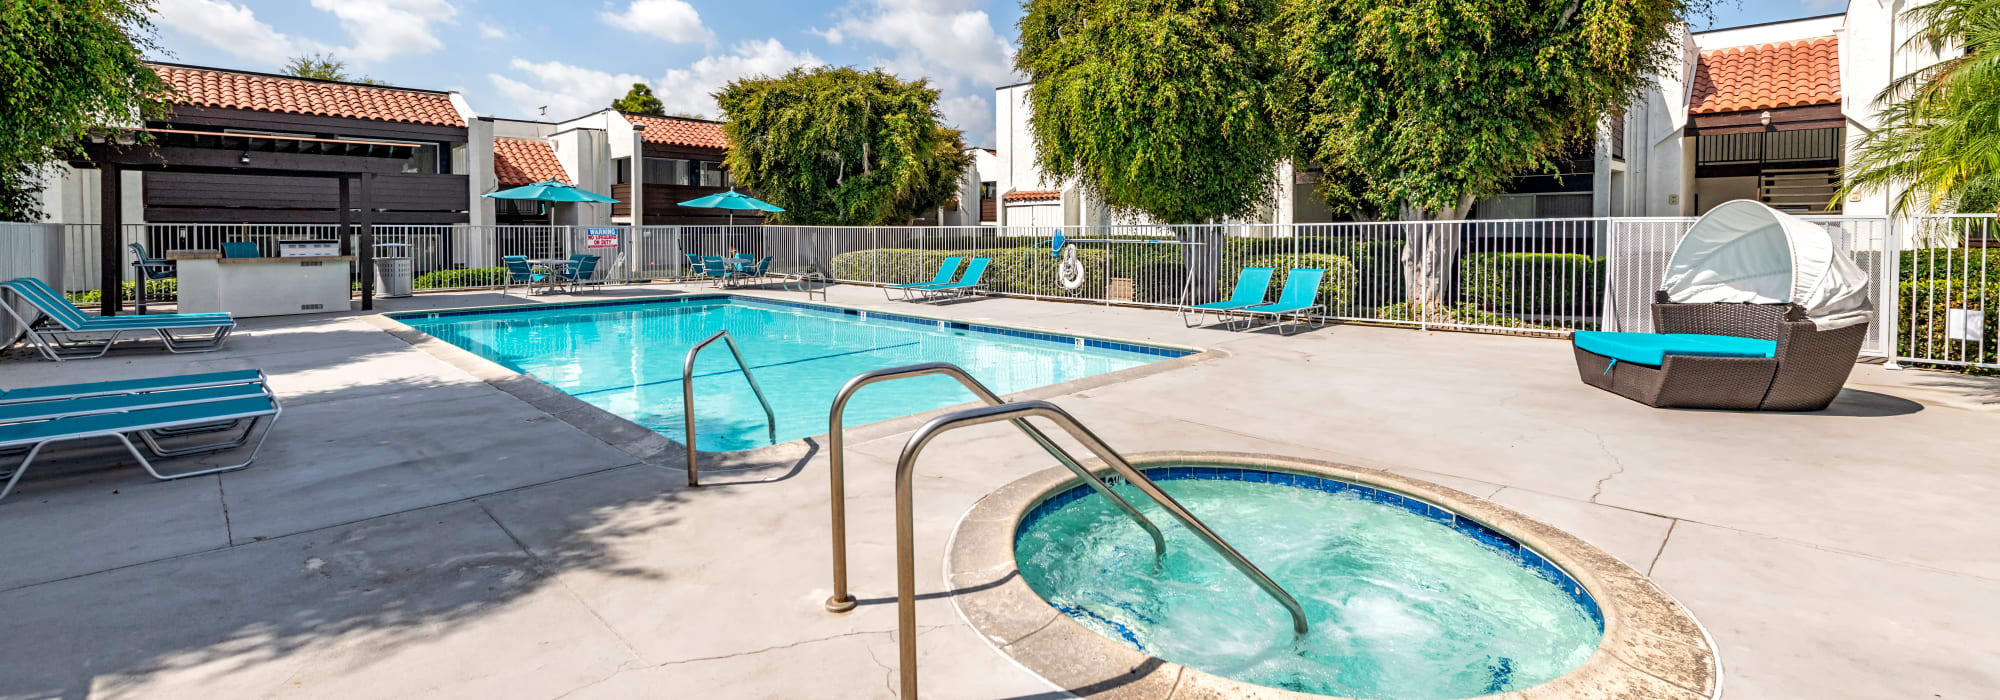 Photos of Kendallwood Apartments in Whittier, California